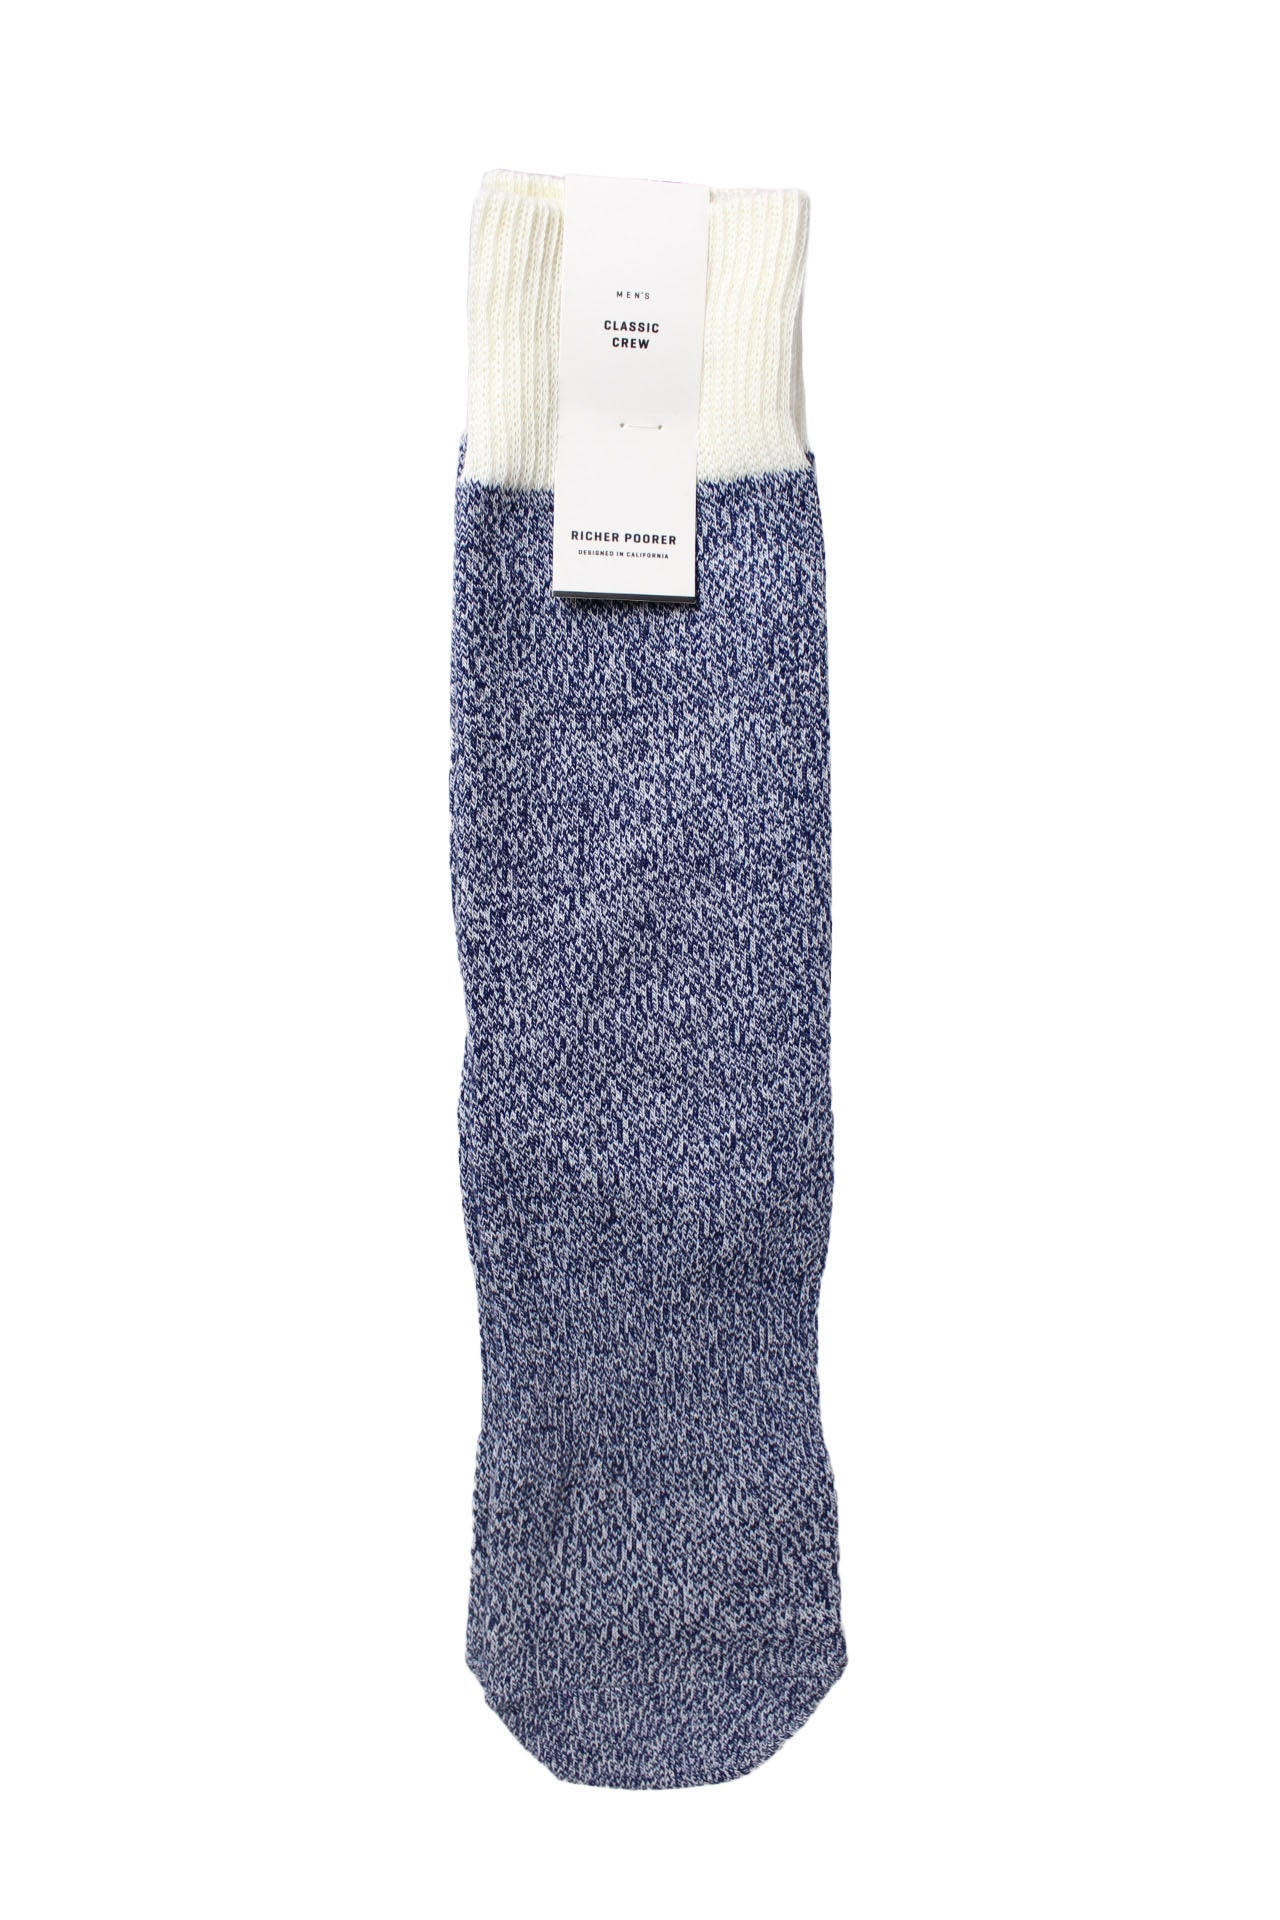 navy blue static crew sock by richer poorer.